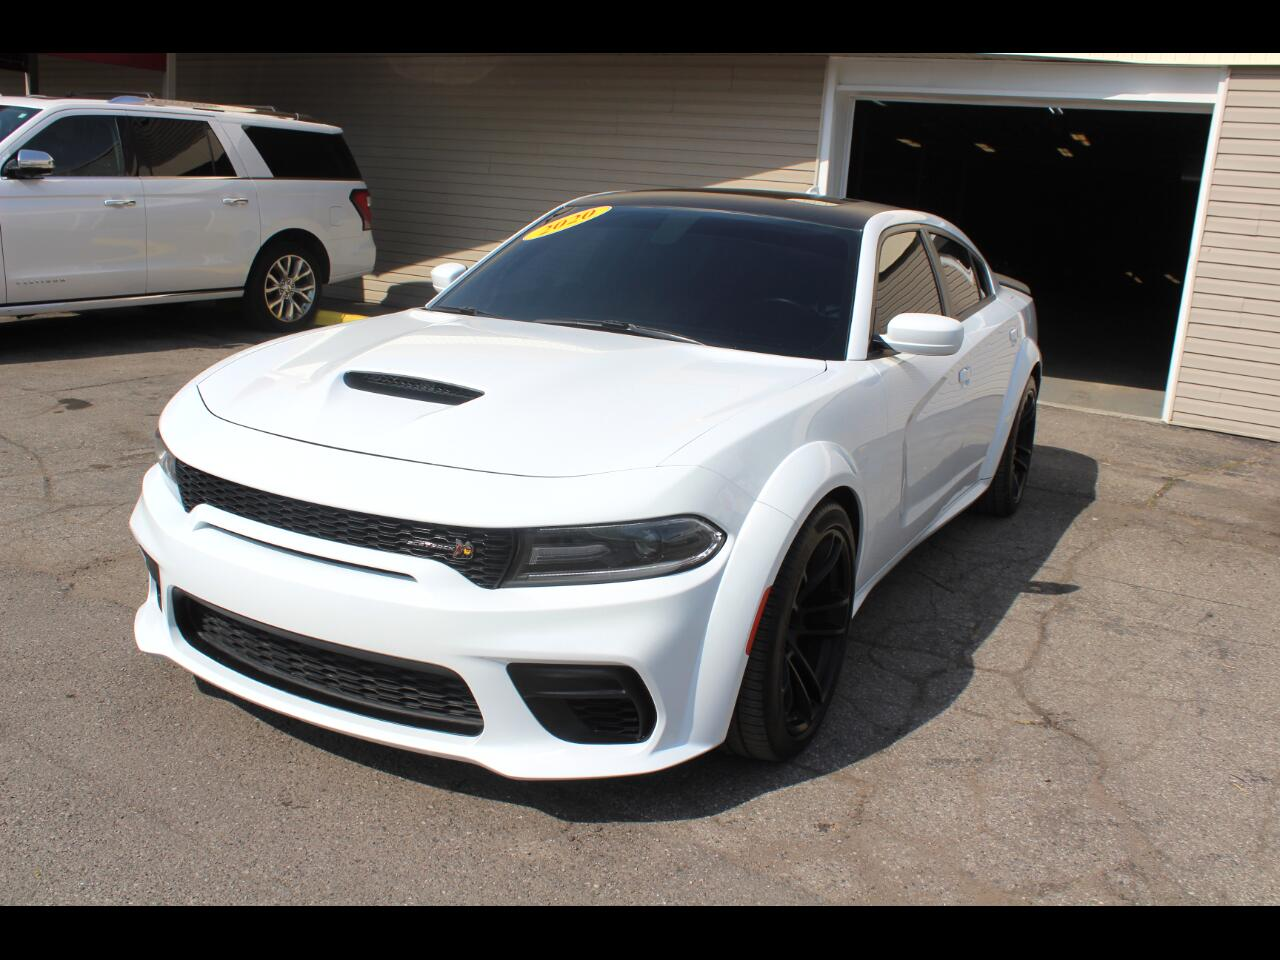 Dodge Charger Scat Pack Widebody RWD 2020